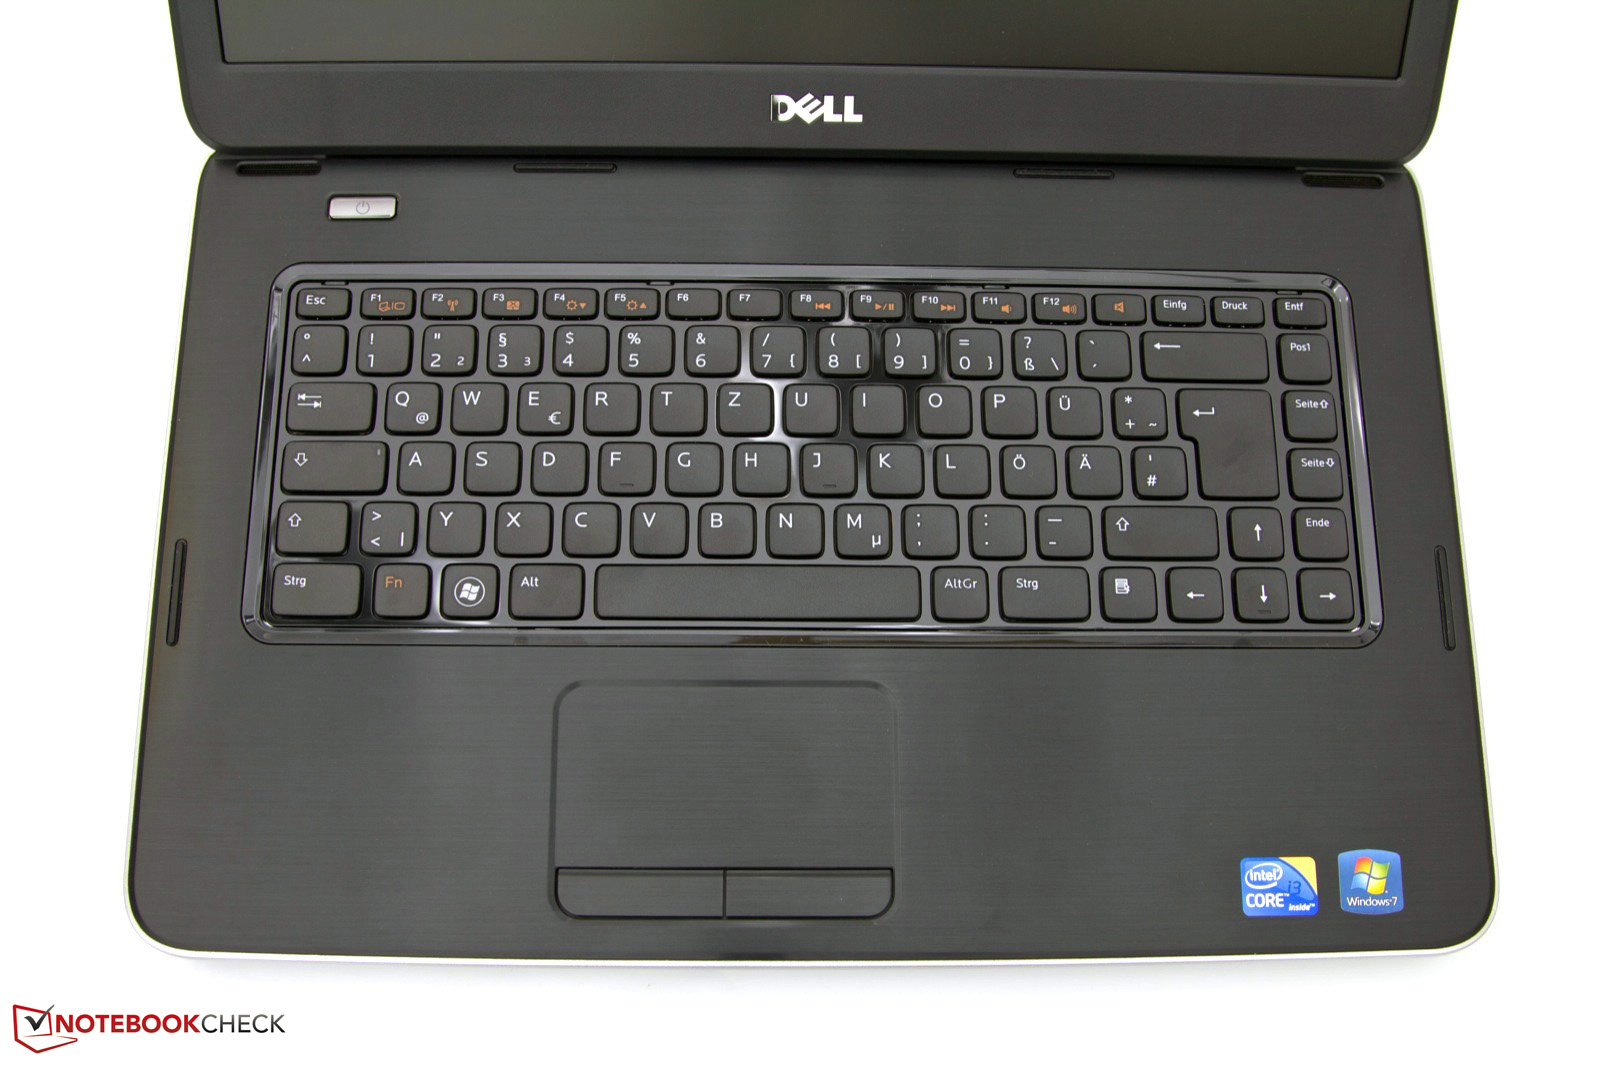 DELL VOSTRO V1540 WINDOWS 7 64BIT DRIVER